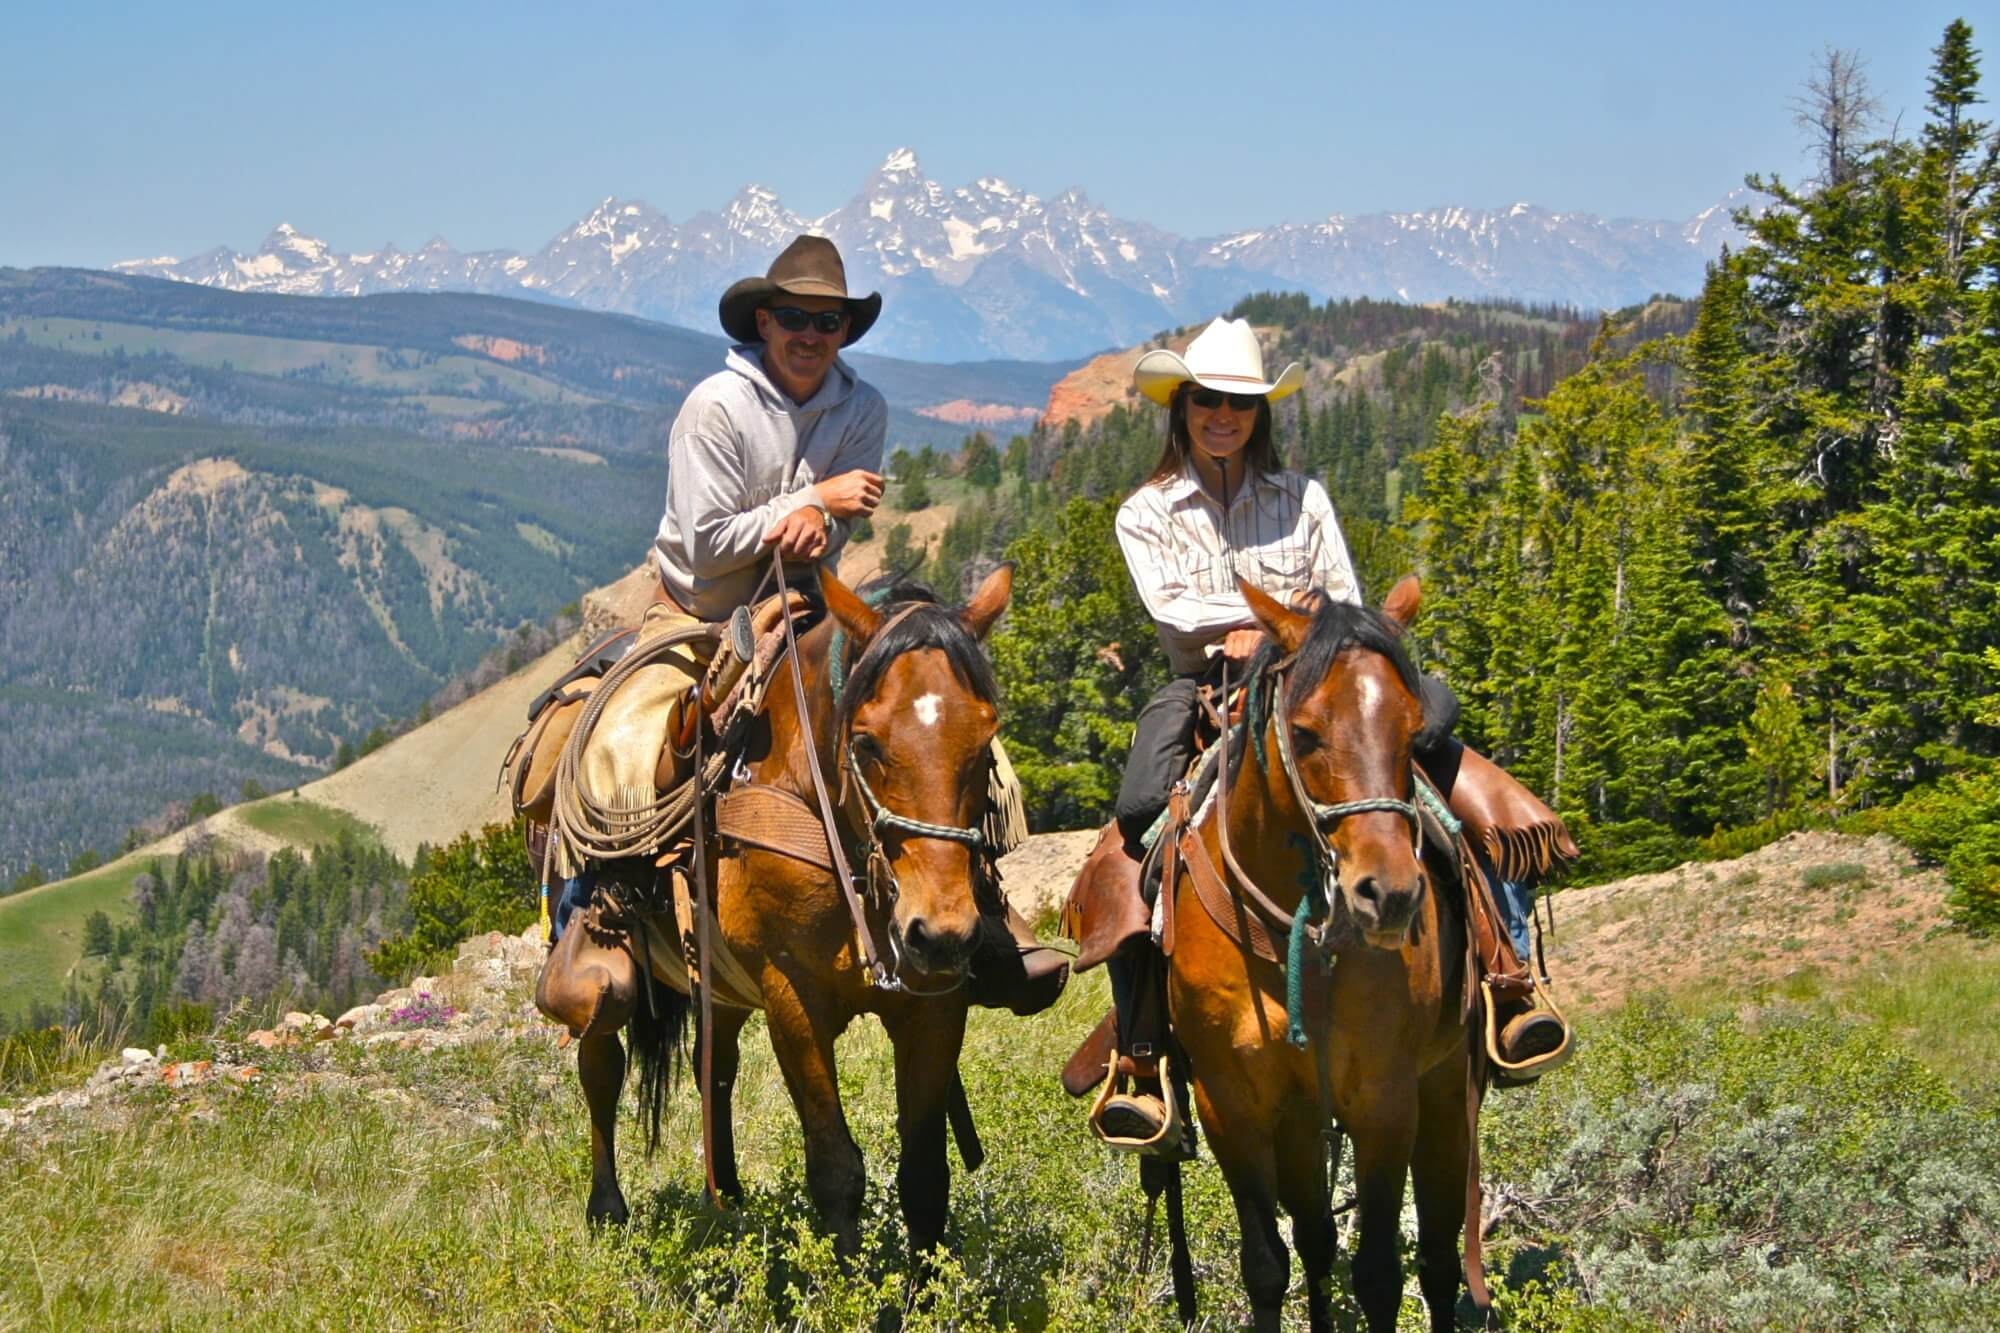 Using our Dude Ranch Packing List, guests will be sure to have everything they need on these epic trail rides-don't forget boots and hats!